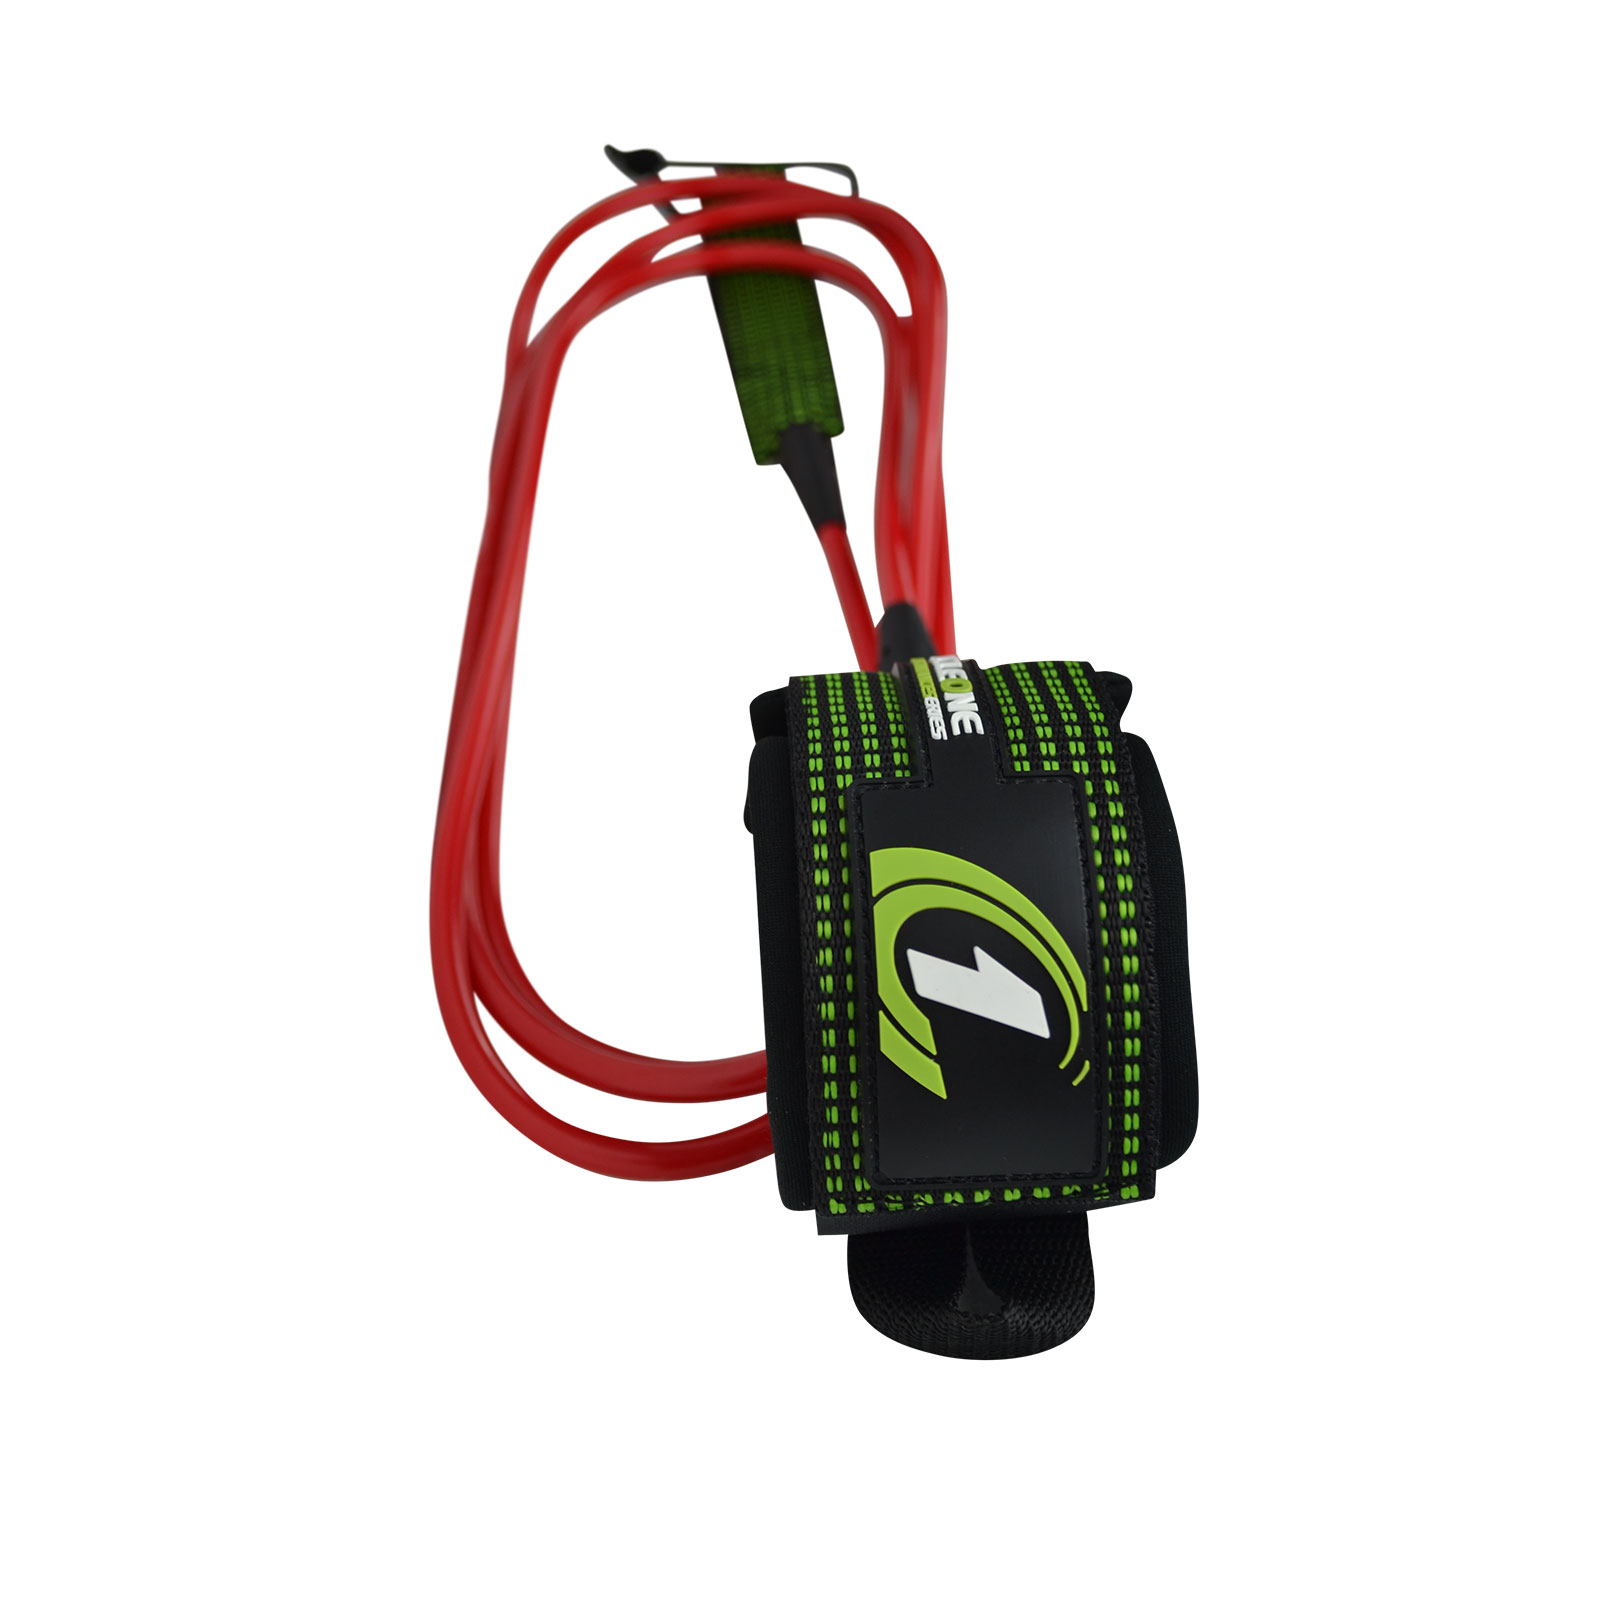 6ft Surfboard Ankle Leash (7mm diameter)